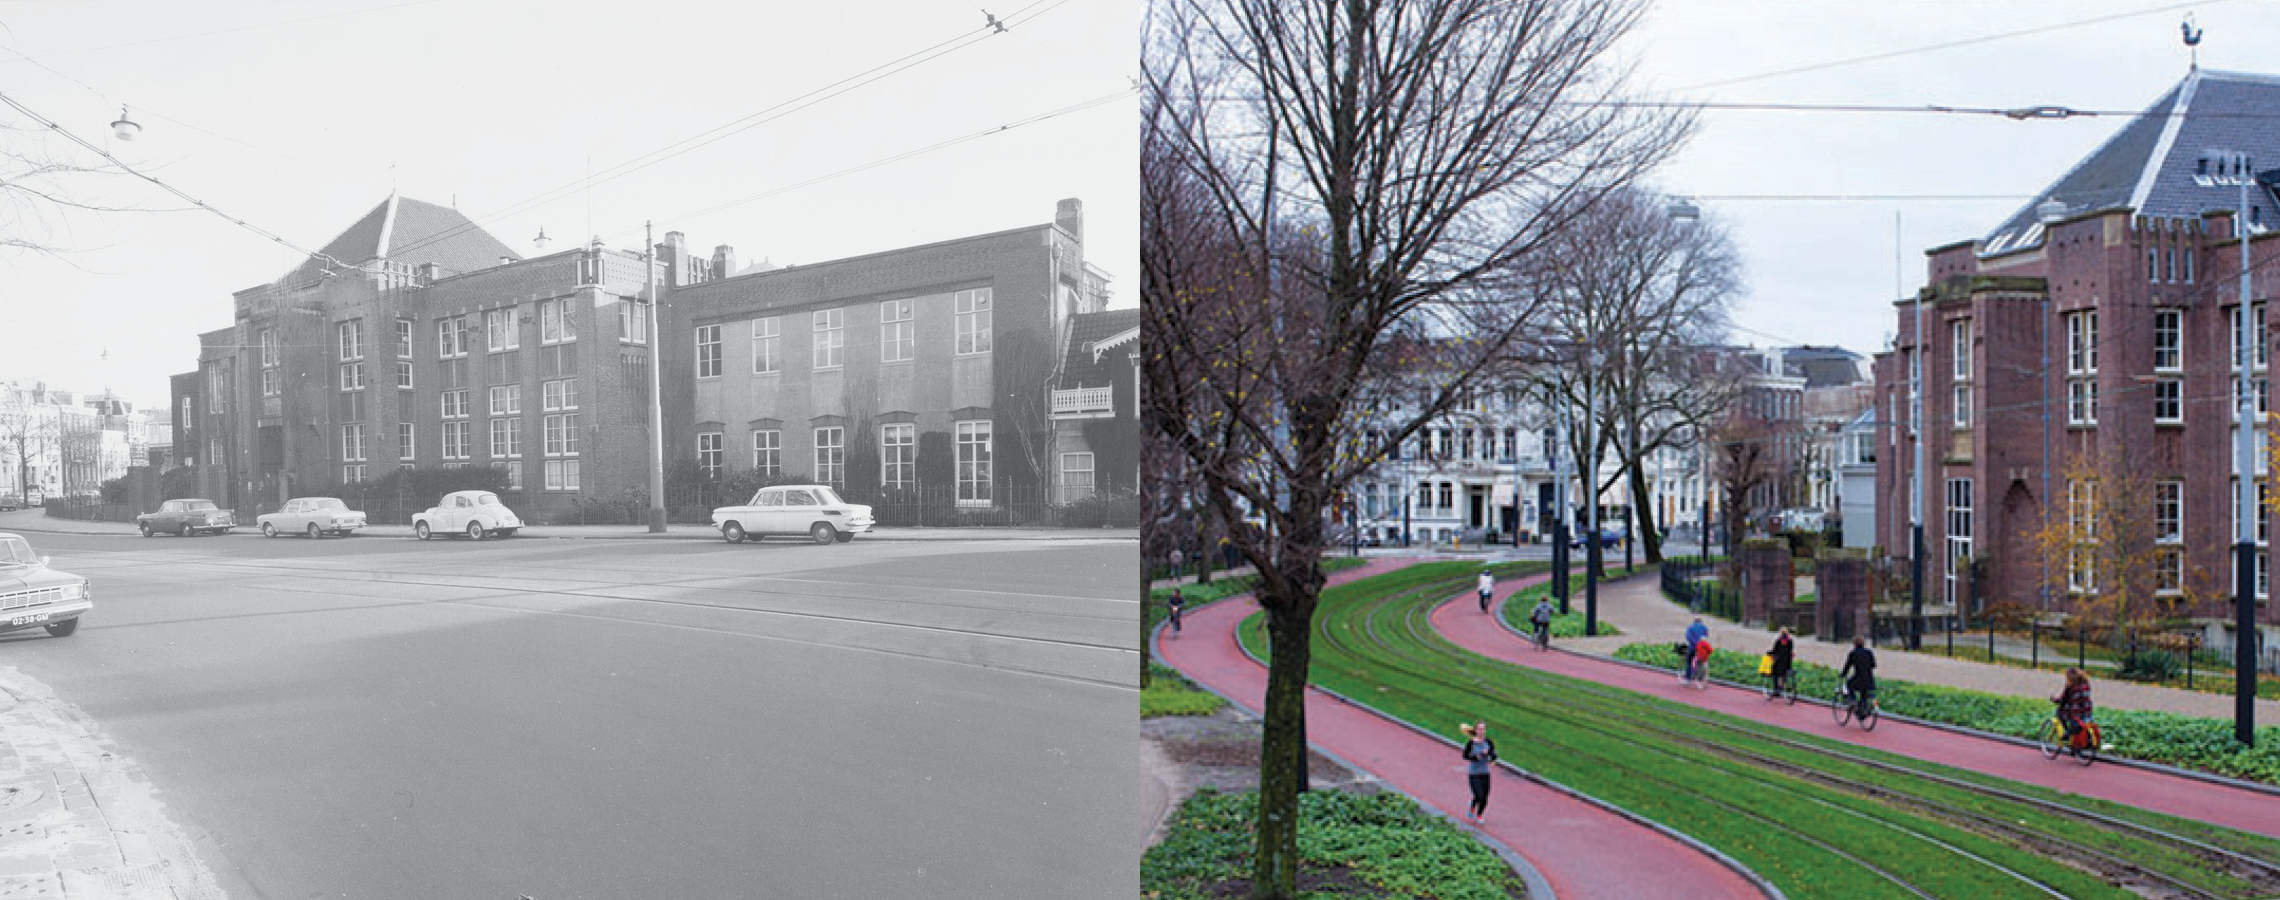 Plantage Middenlaan, Amsterdam - before and after